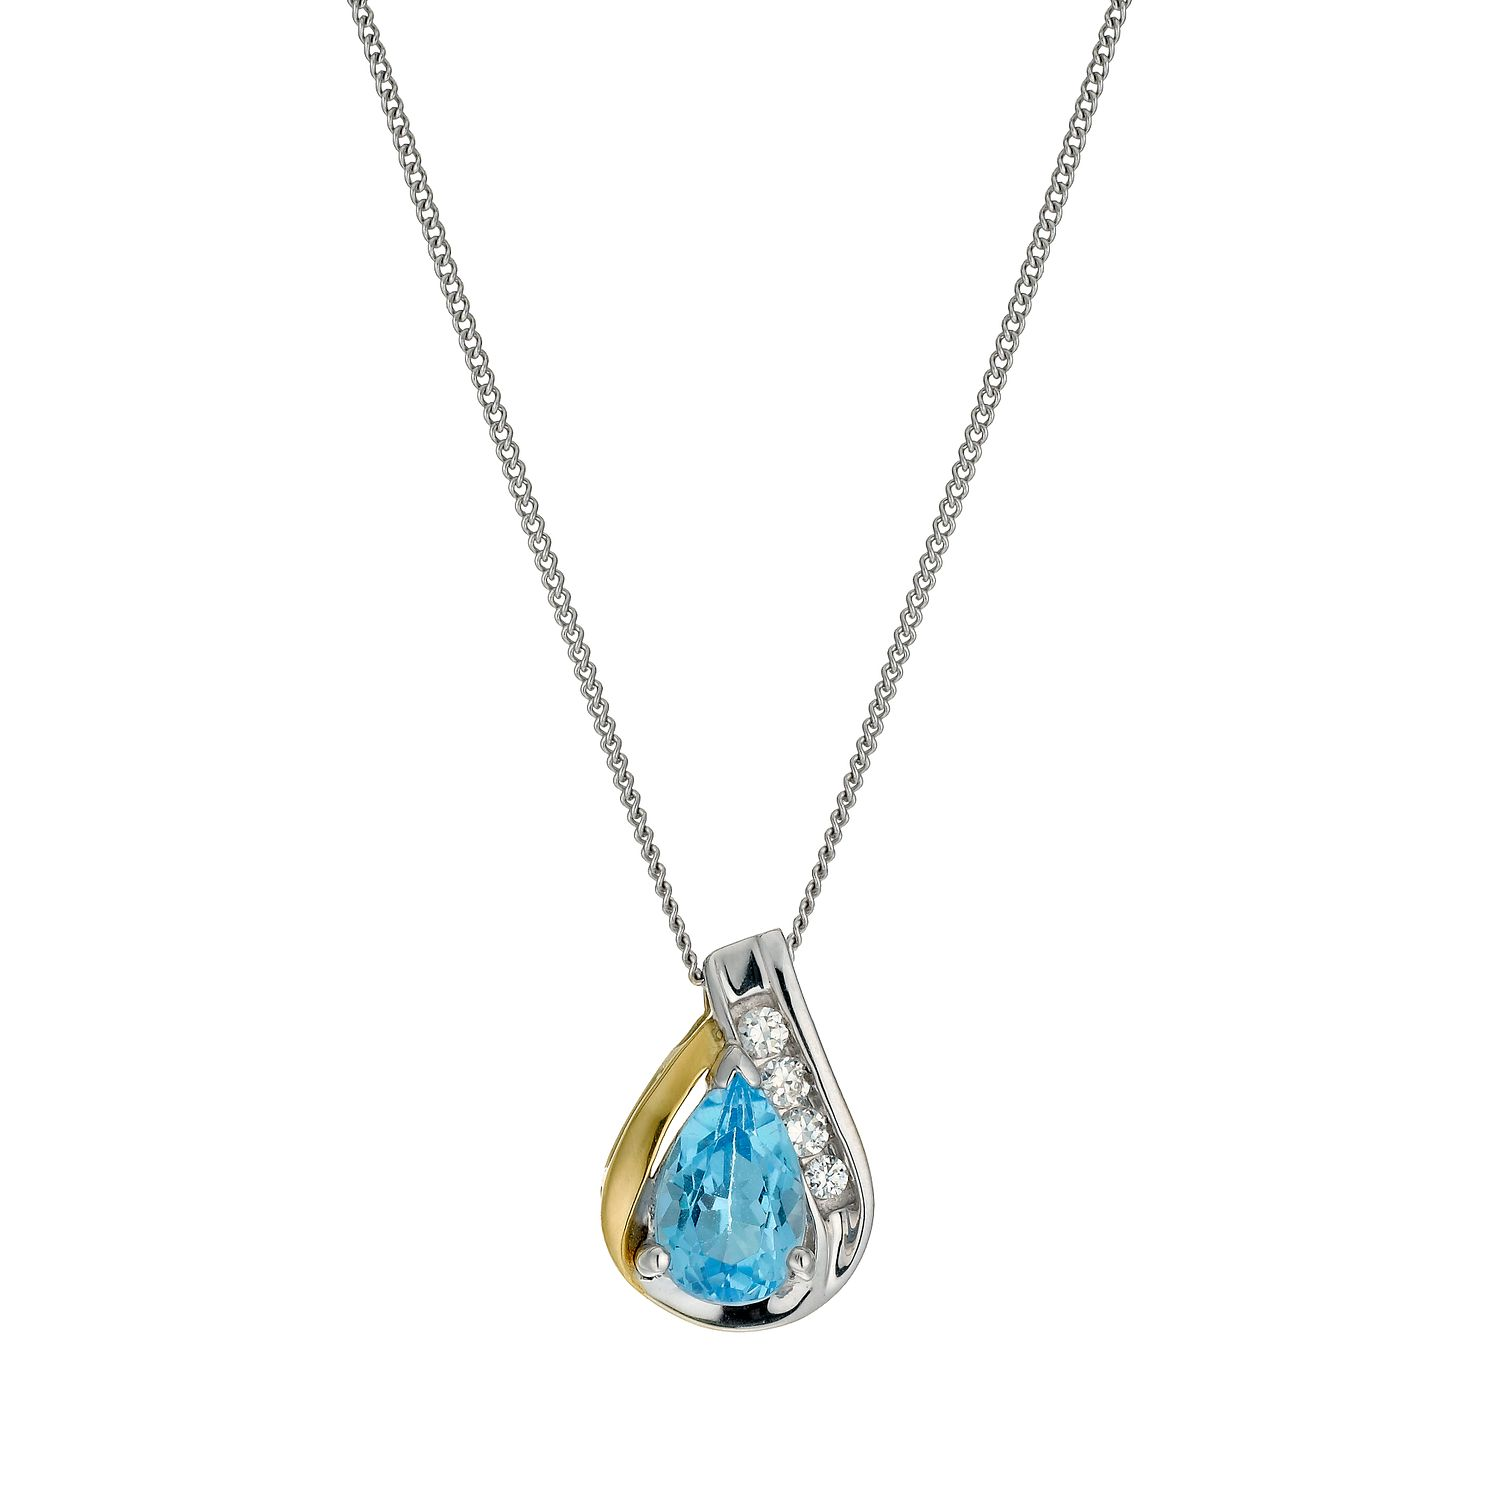 Sterling Silver & 9ct Gold Blue Topaz Pear Pendant 18 inches - Product number 9629637